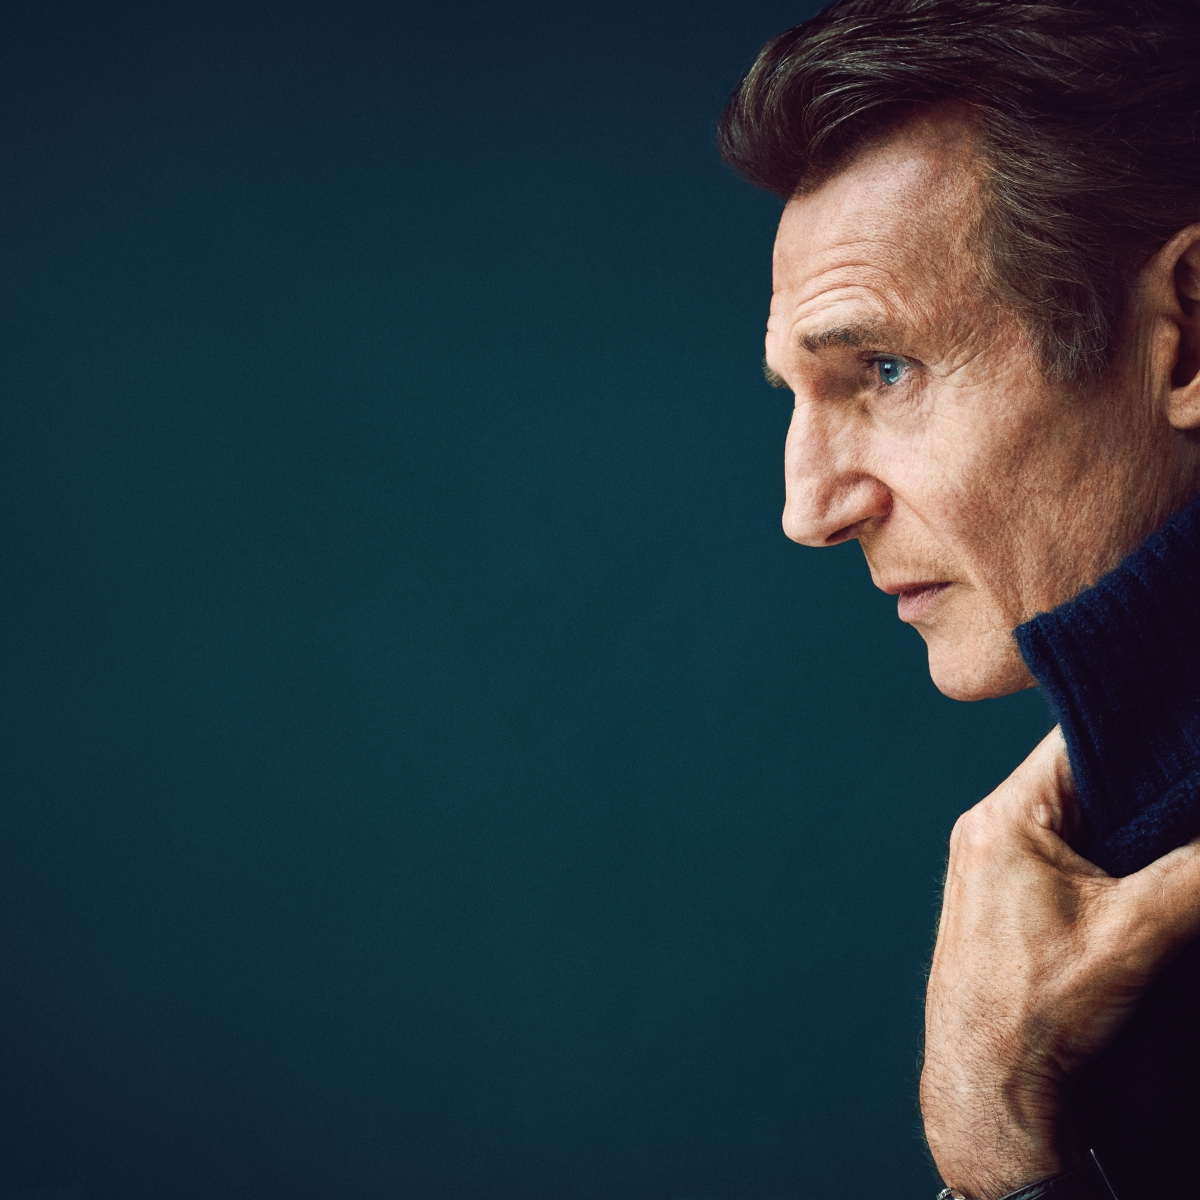 a8f5fdaaf The Long Game of Liam Neeson - Liam Neeson Interview - Men's Journal